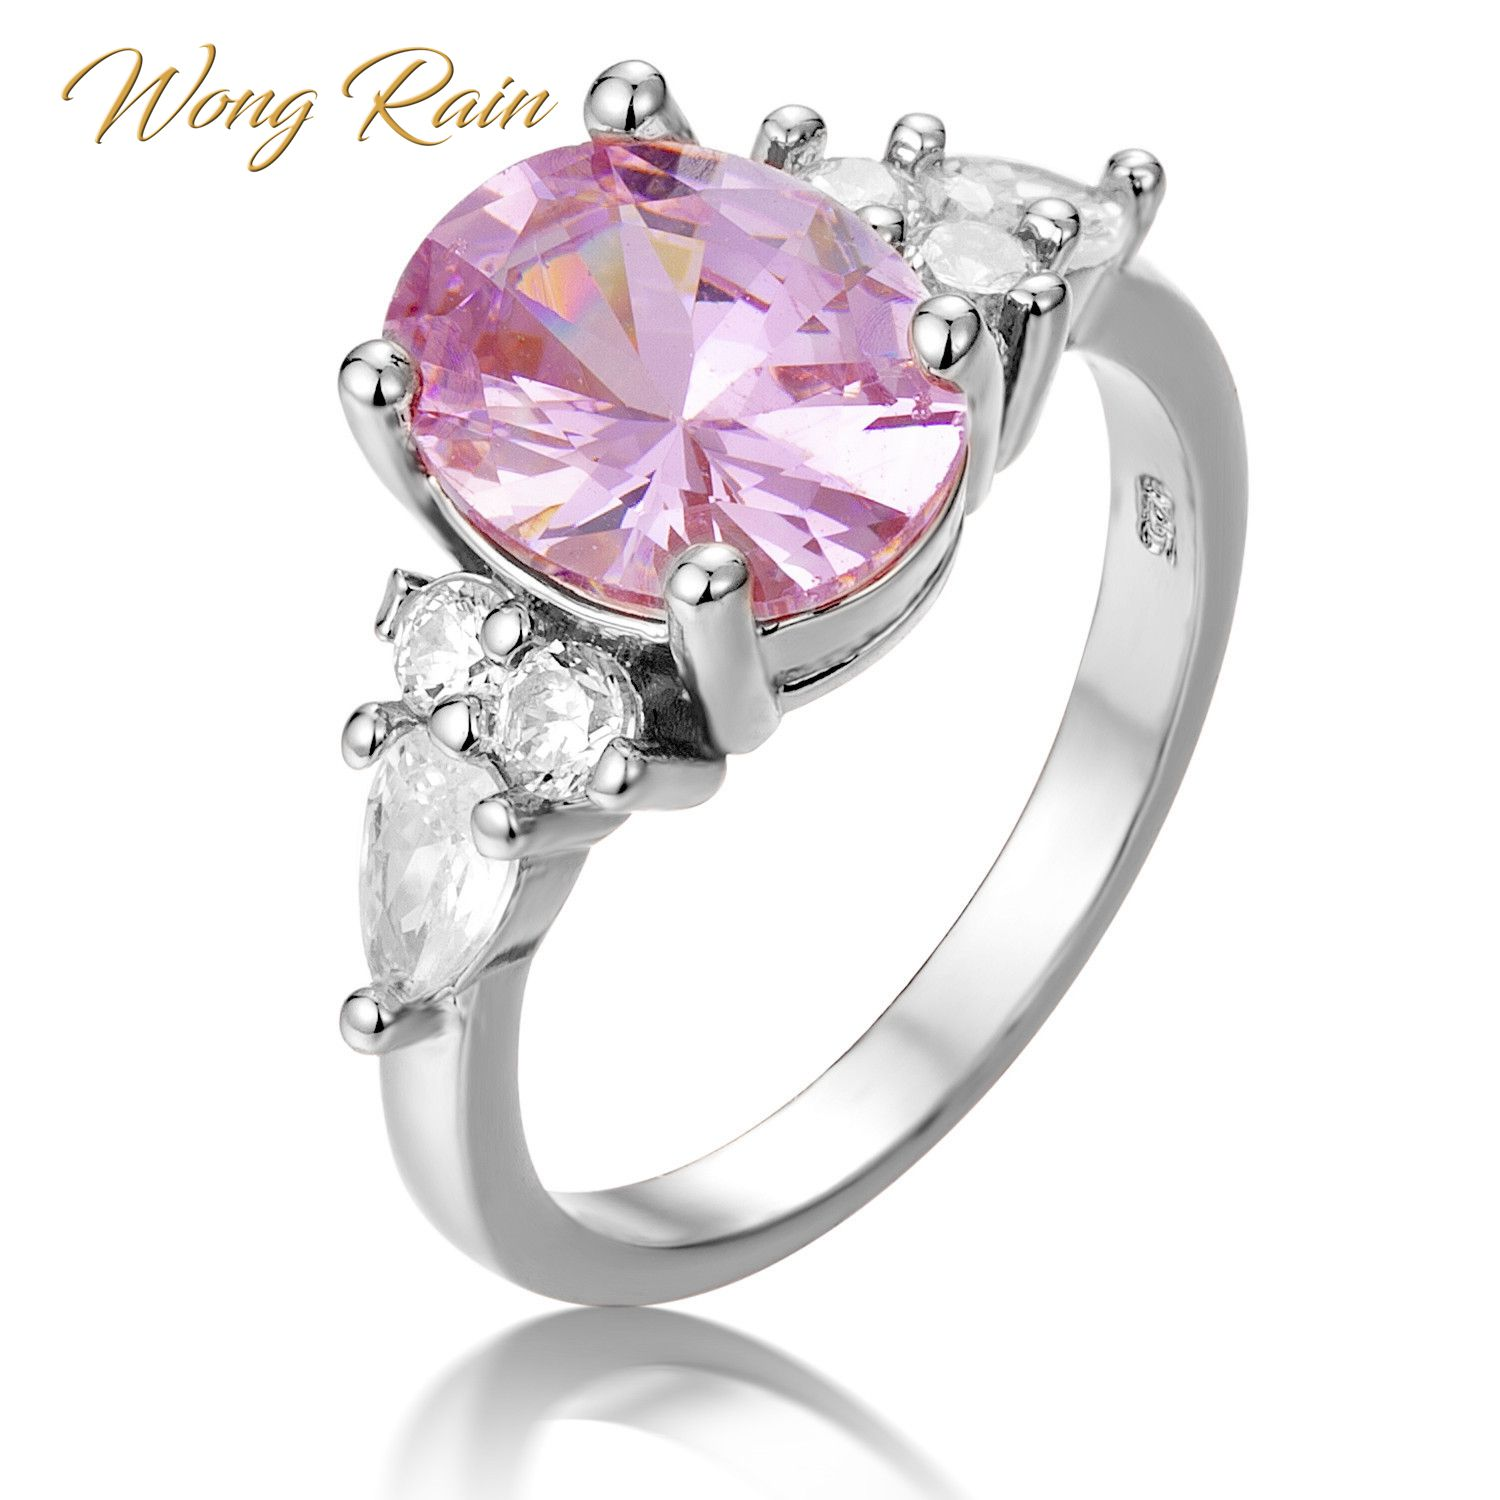 Wong Rain Vintage 100% 925 Sterling Silver Pink Sapphire Gemstone Wedding Engagement Cocktail Party Ring Fine Jewelry Wholesale